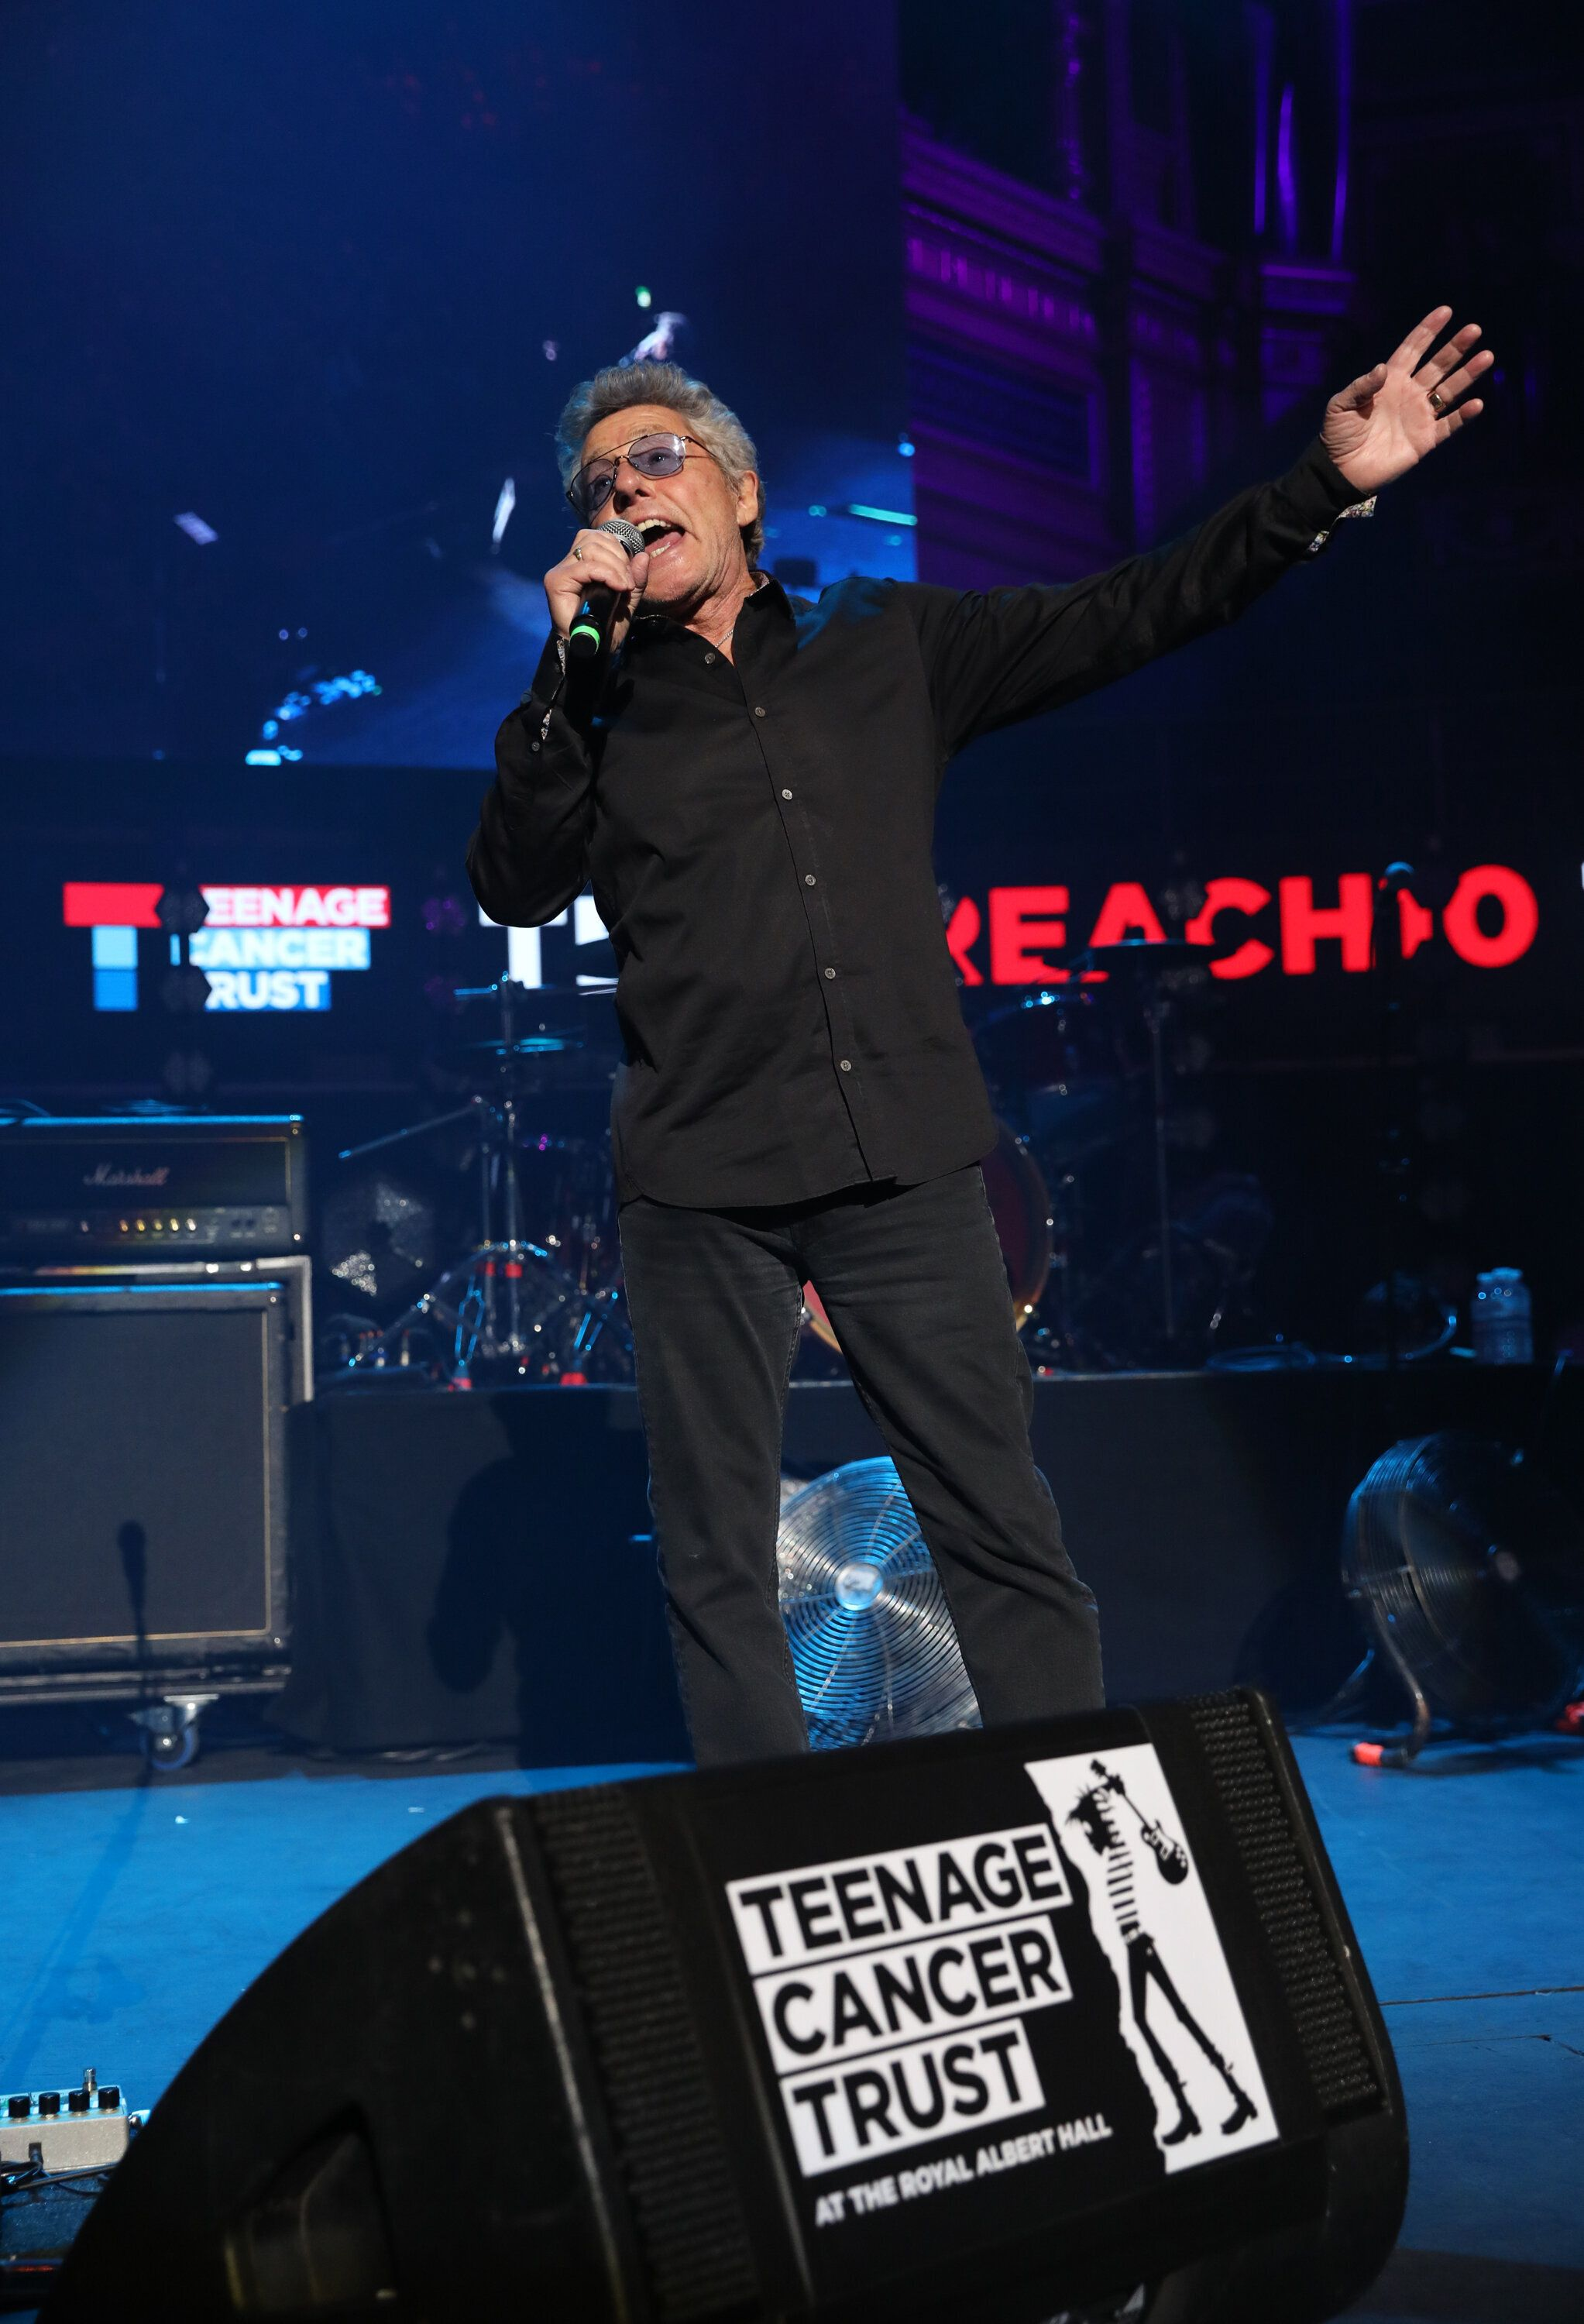 TCT's Honorary Patron Roger Daltrey CBE presents Doves during the Teenage Cancer Trust Concert, Royal Albert Hall, London. (Photo by Isabel Infantes/PA Images via Getty Images)